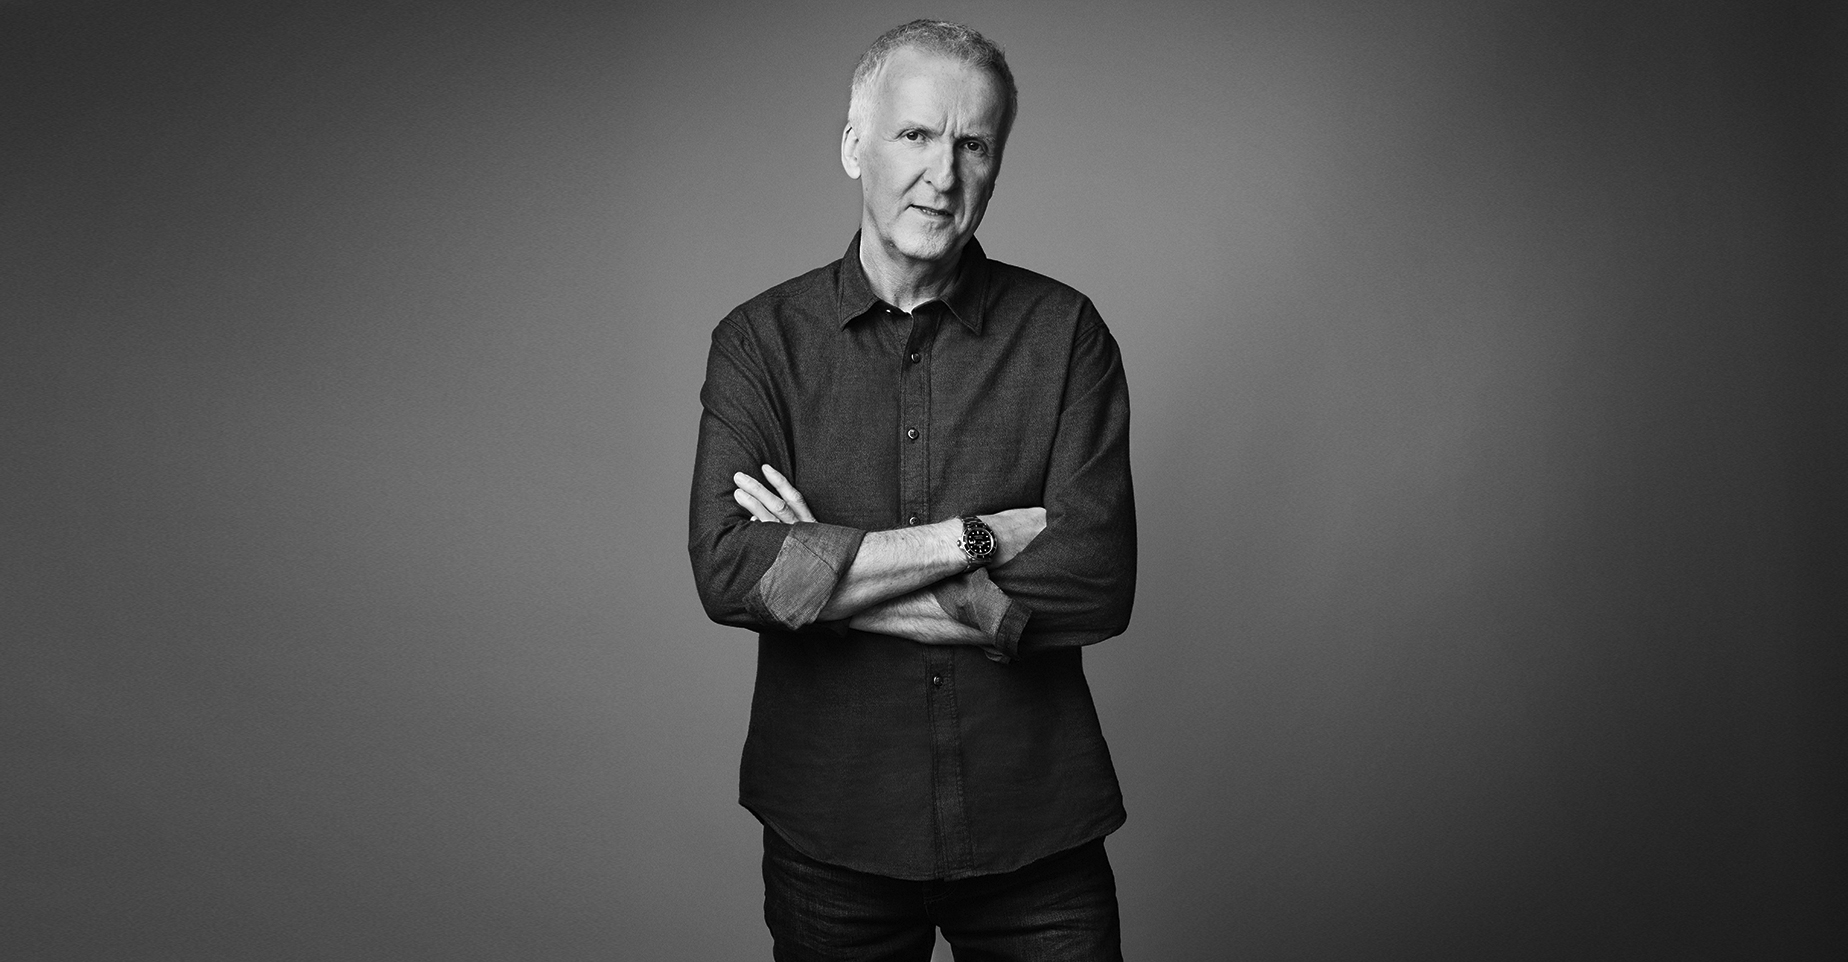 Movies by James Cameron